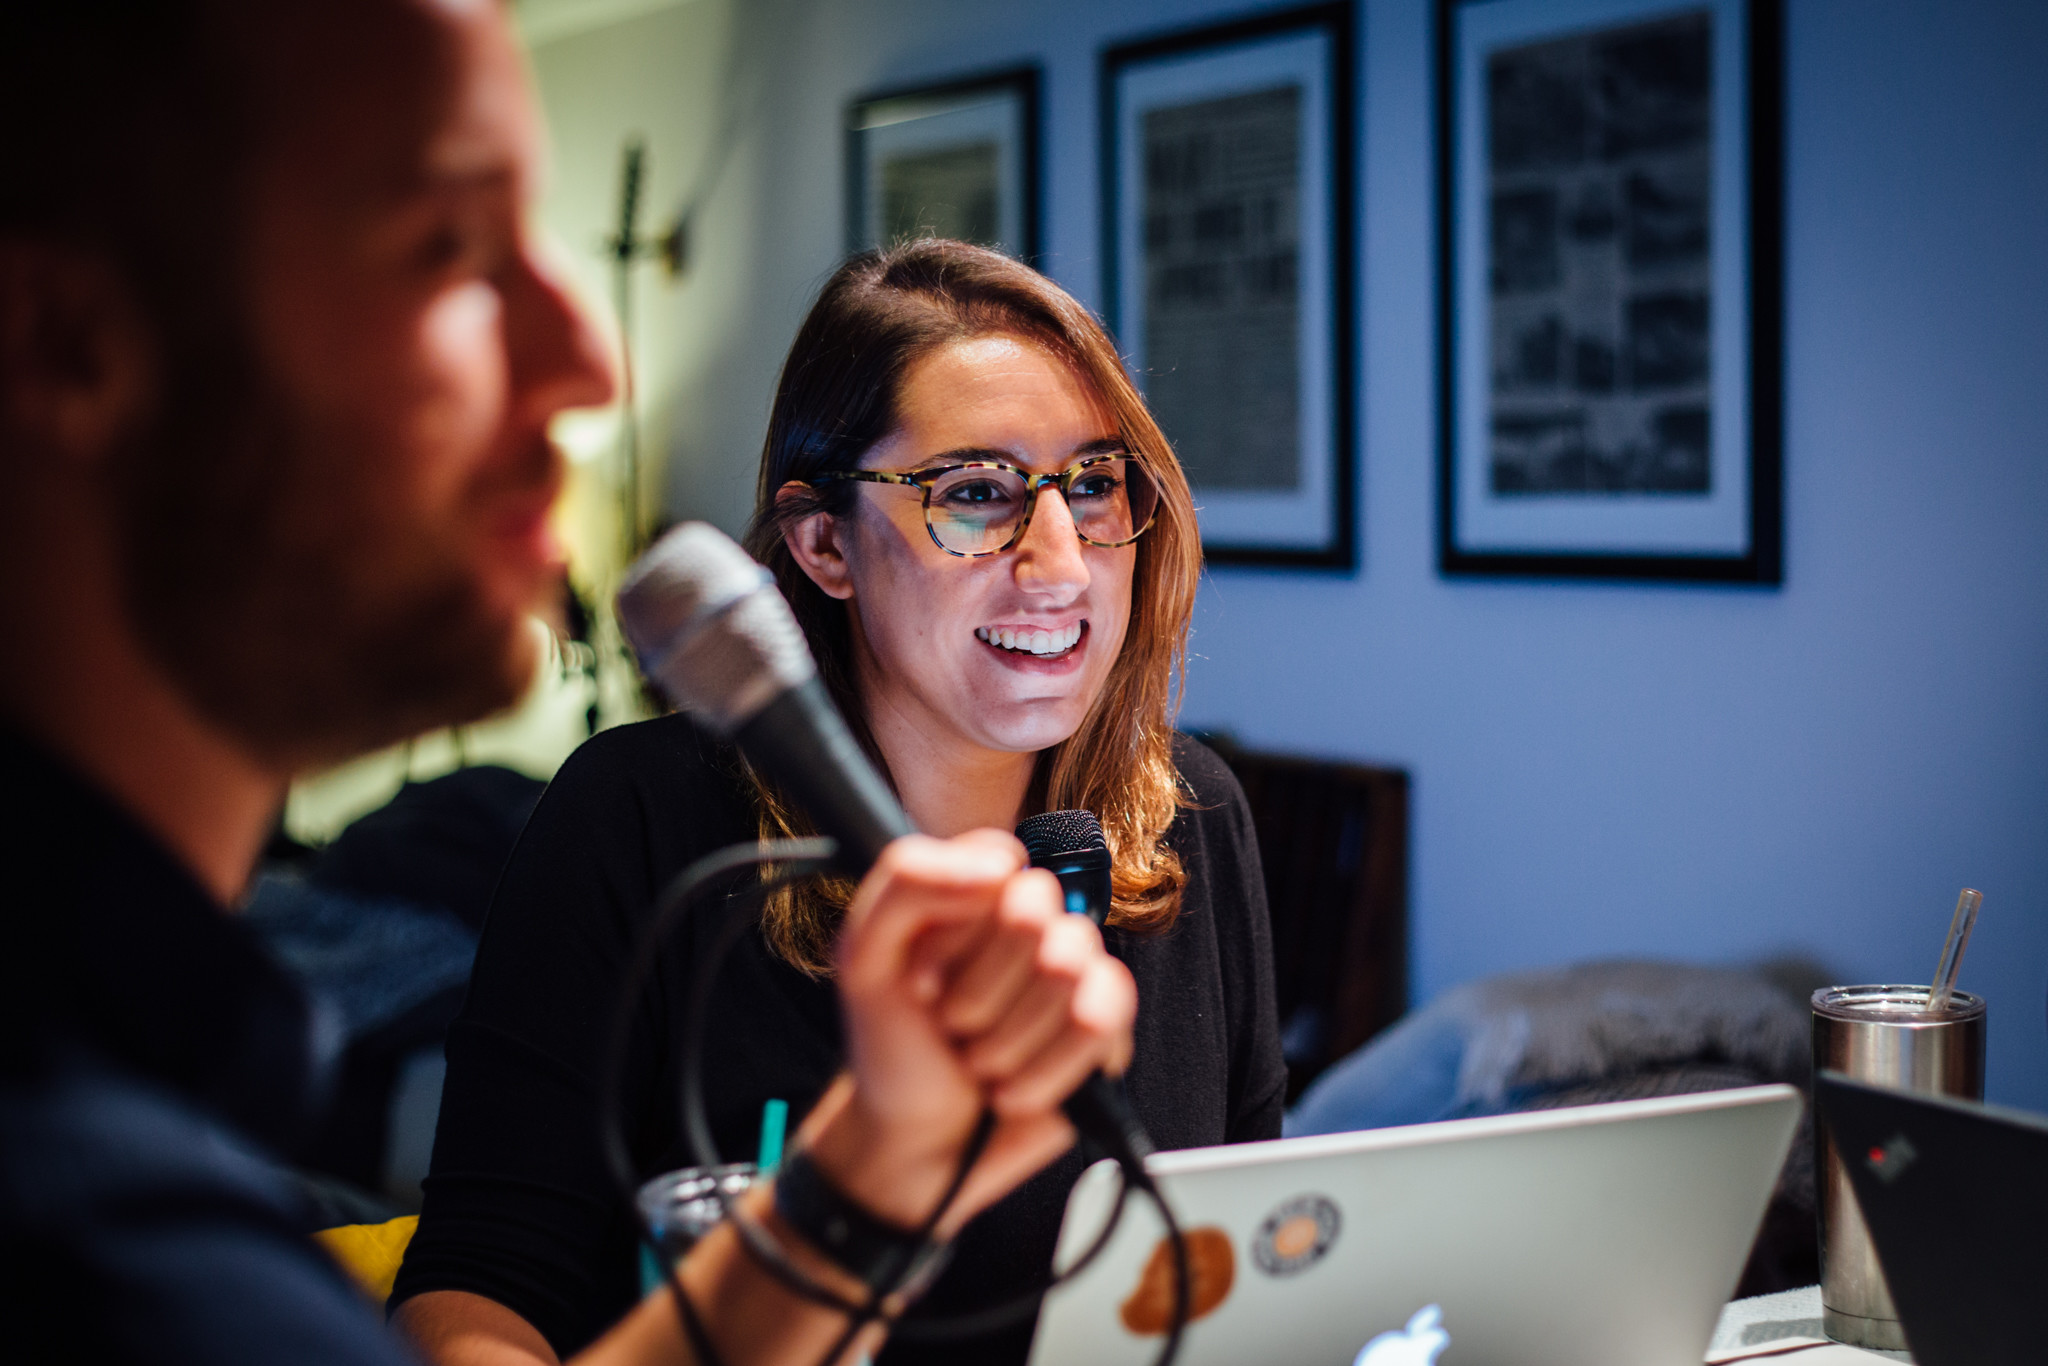 Plan, Launch and Market Your Podcast - For non-profits and businesses